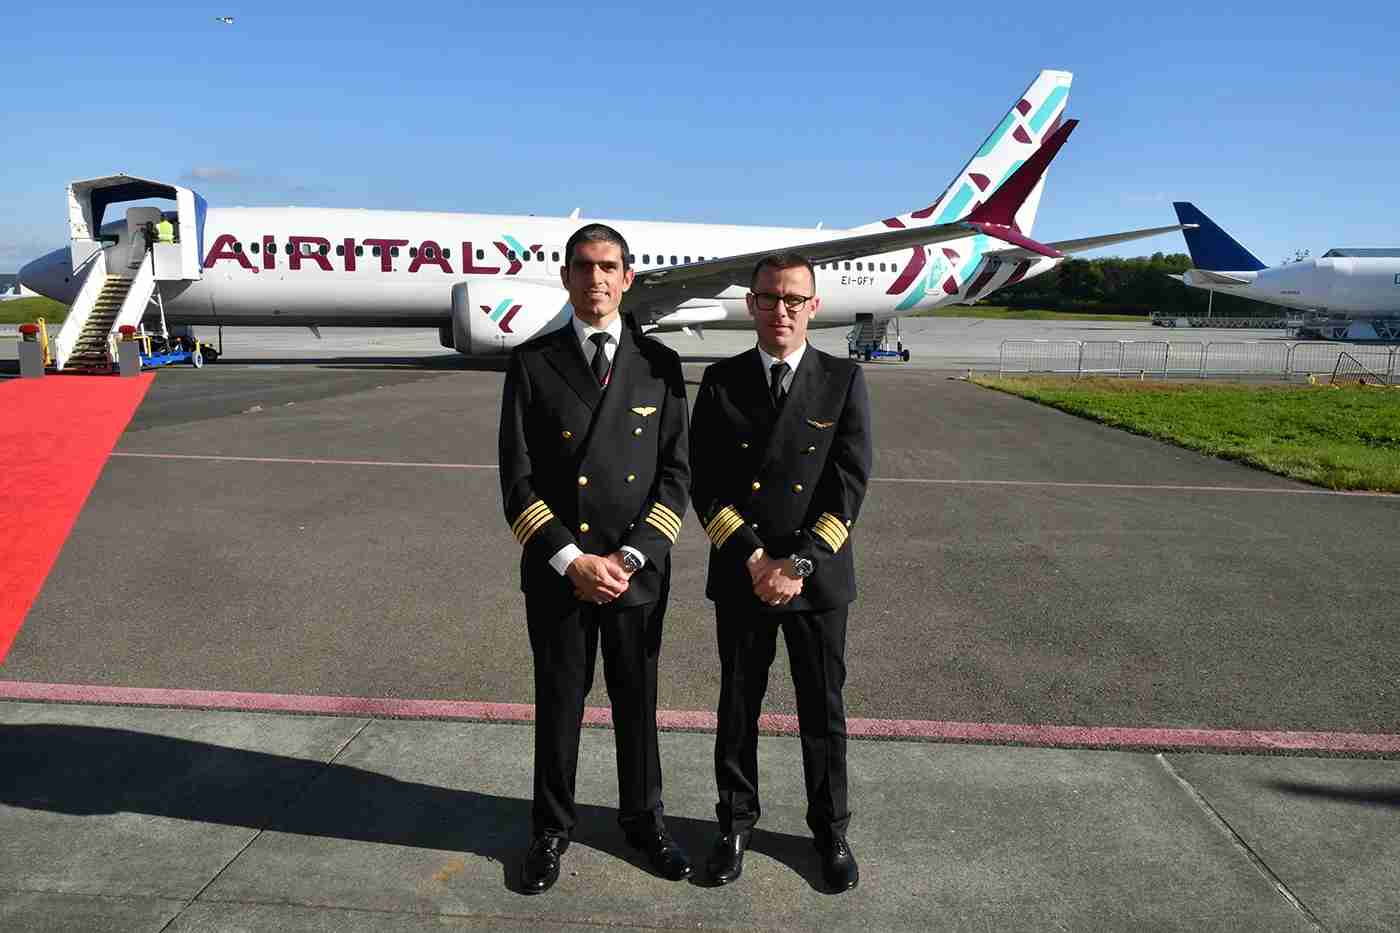 Air Italy Captains Criscuolo (L) and Massaro were clearly proud of their new charge. The transition to the MAX from current 737 models is quick and seamless, they said.